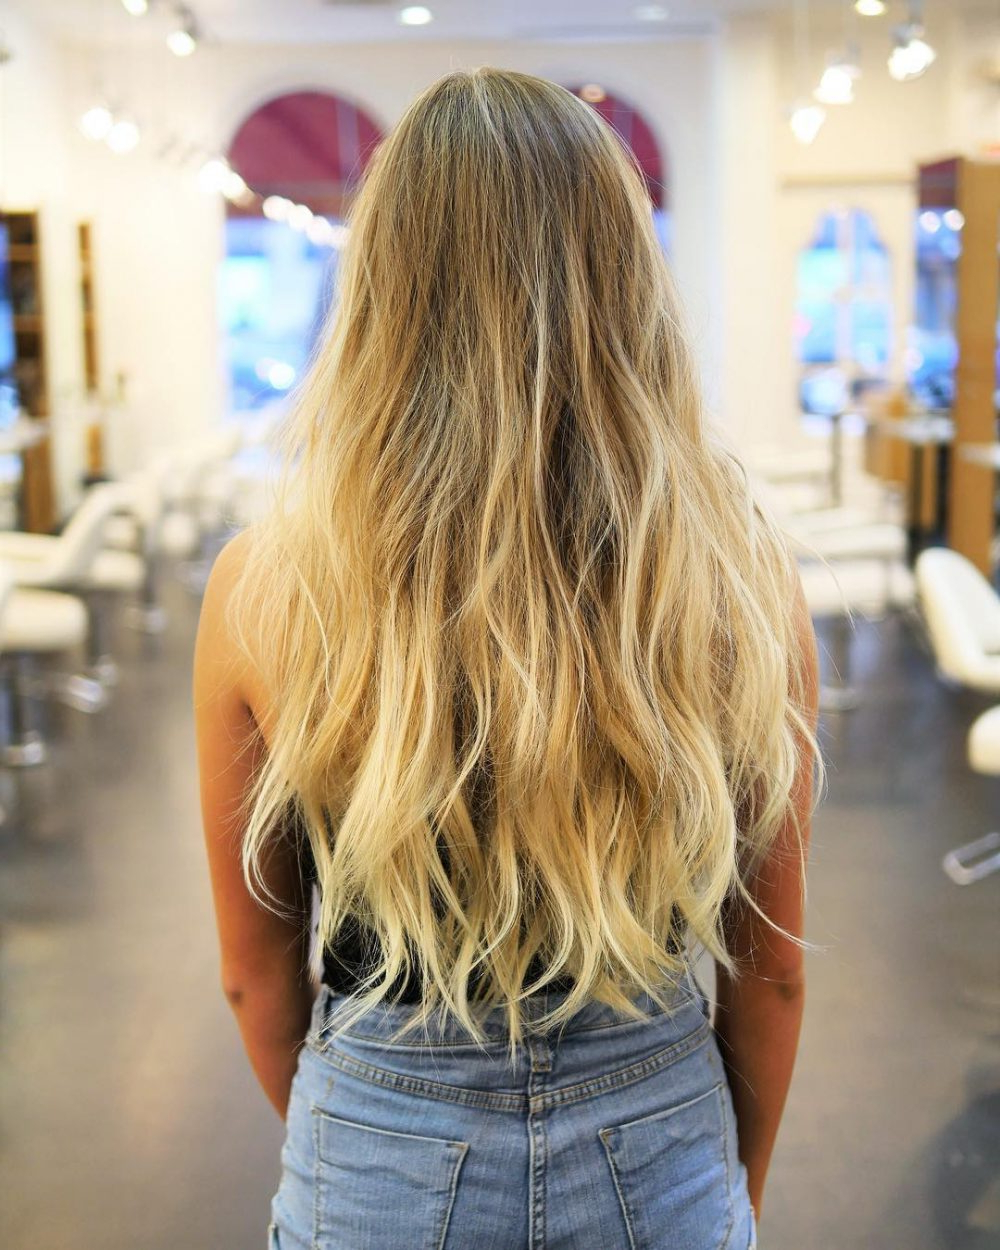 43 Cutest Long Layered Haircuts Trending In 2018 Pertaining To Short And Long Layer Hairstyles (View 9 of 20)